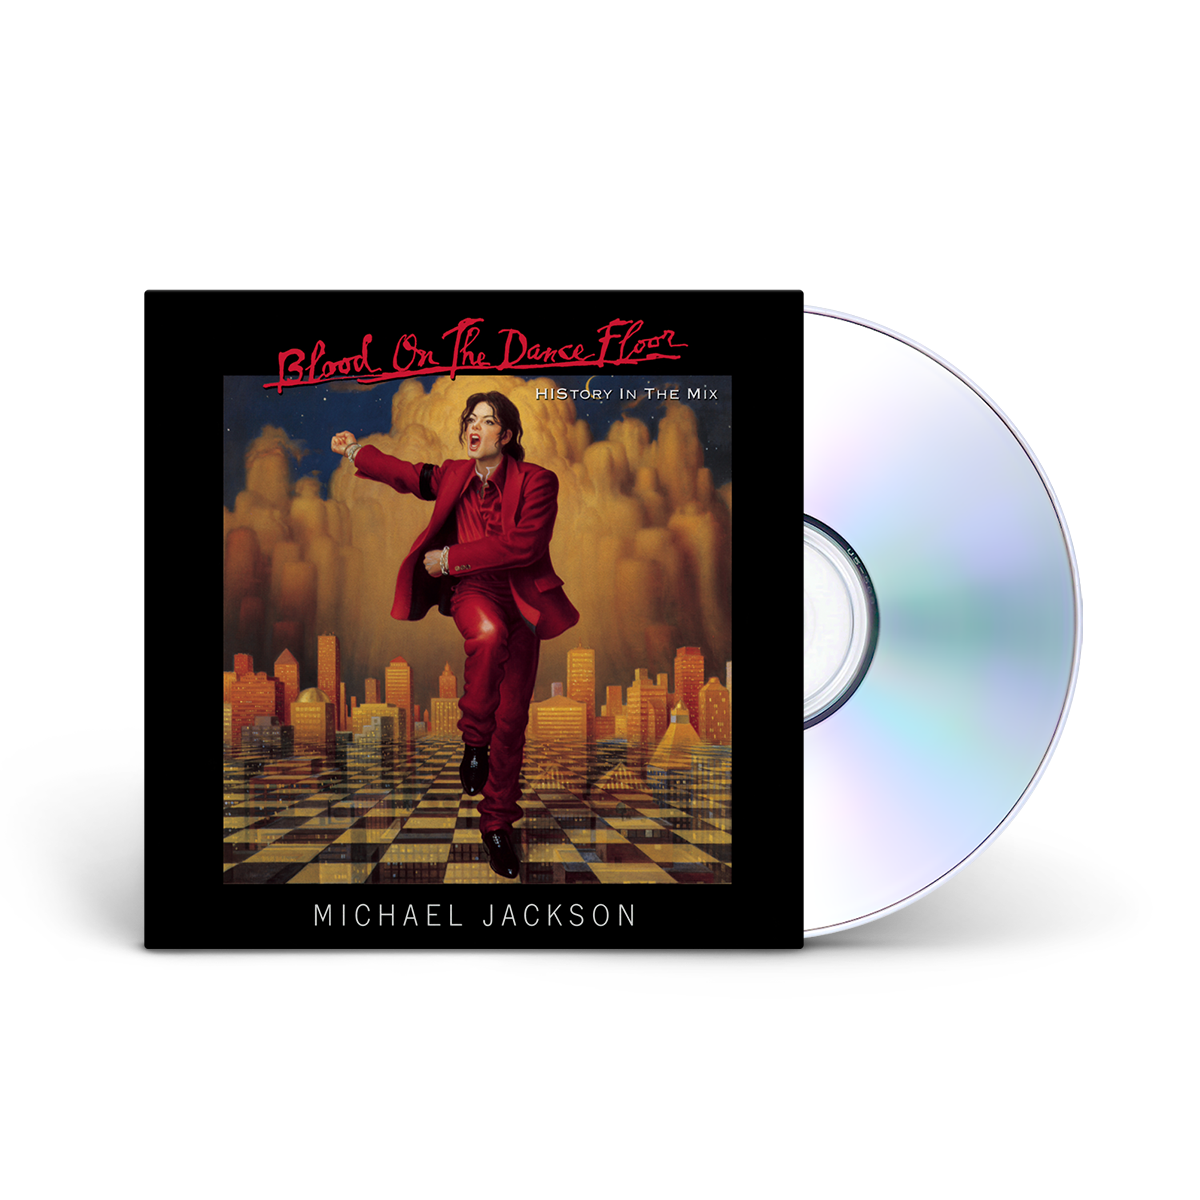 Blood on the Dance Floor/History in the Mix CD